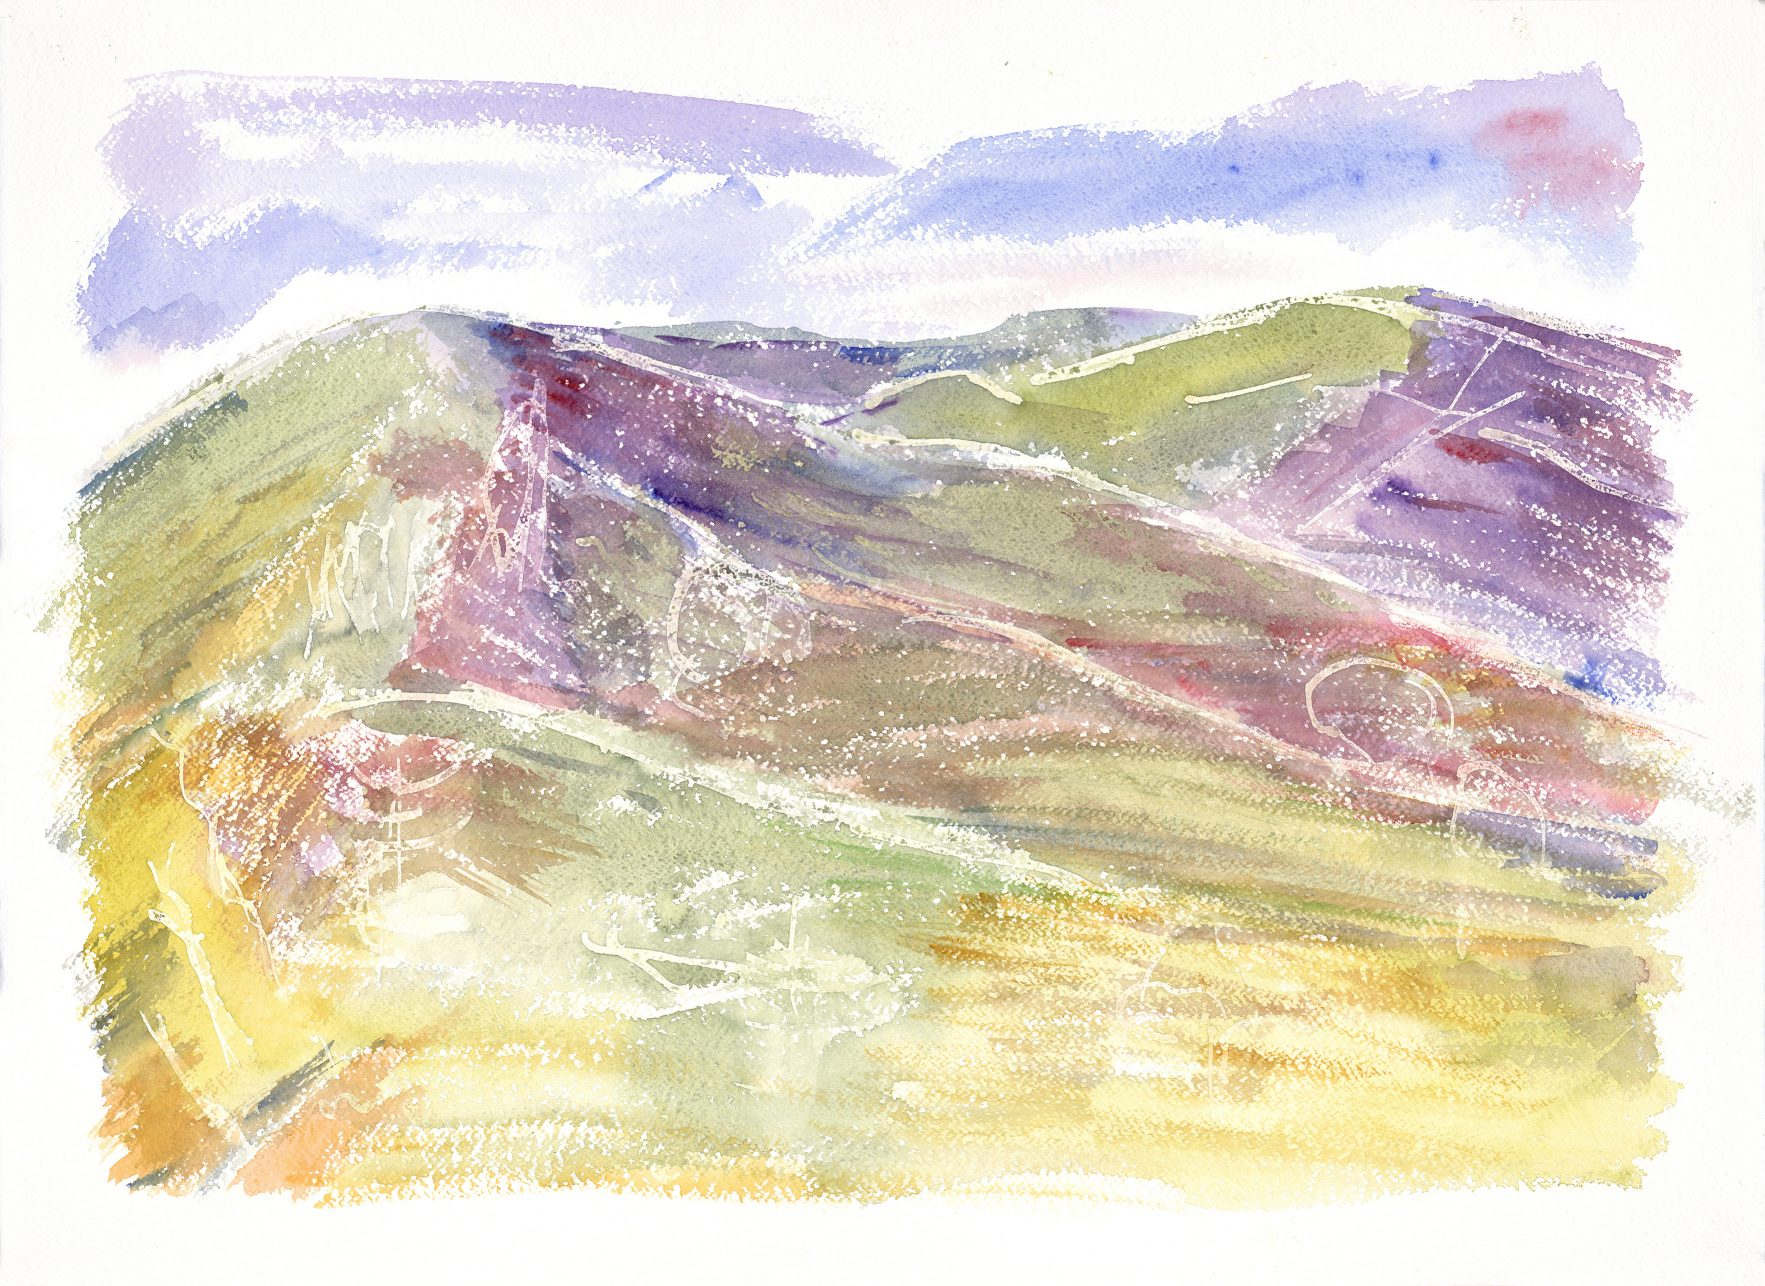 Water-colour painting of mountains